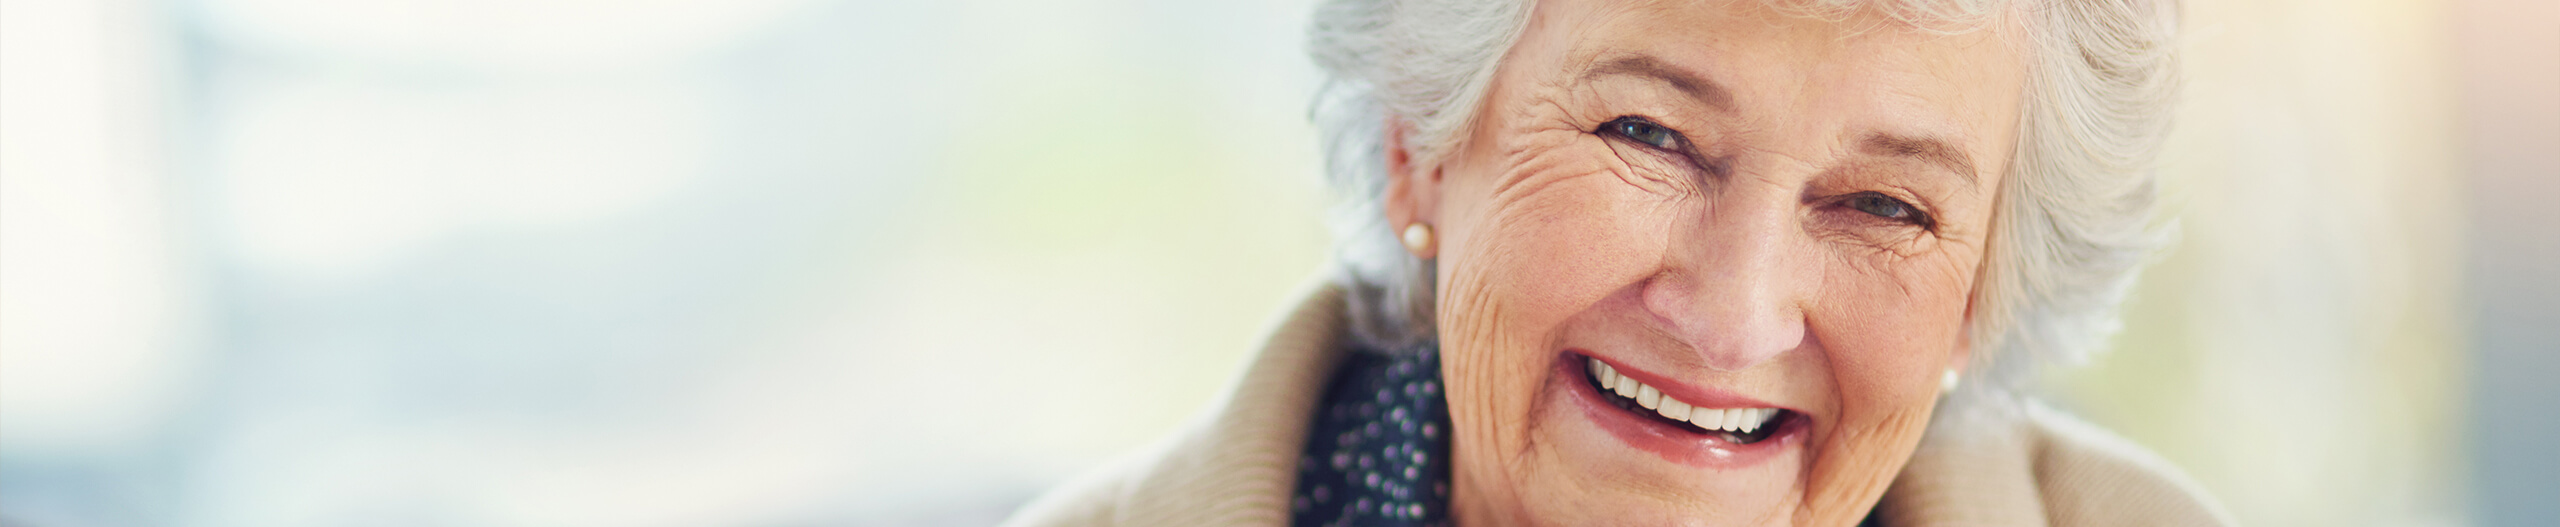 Elderly woman smiling with dentures